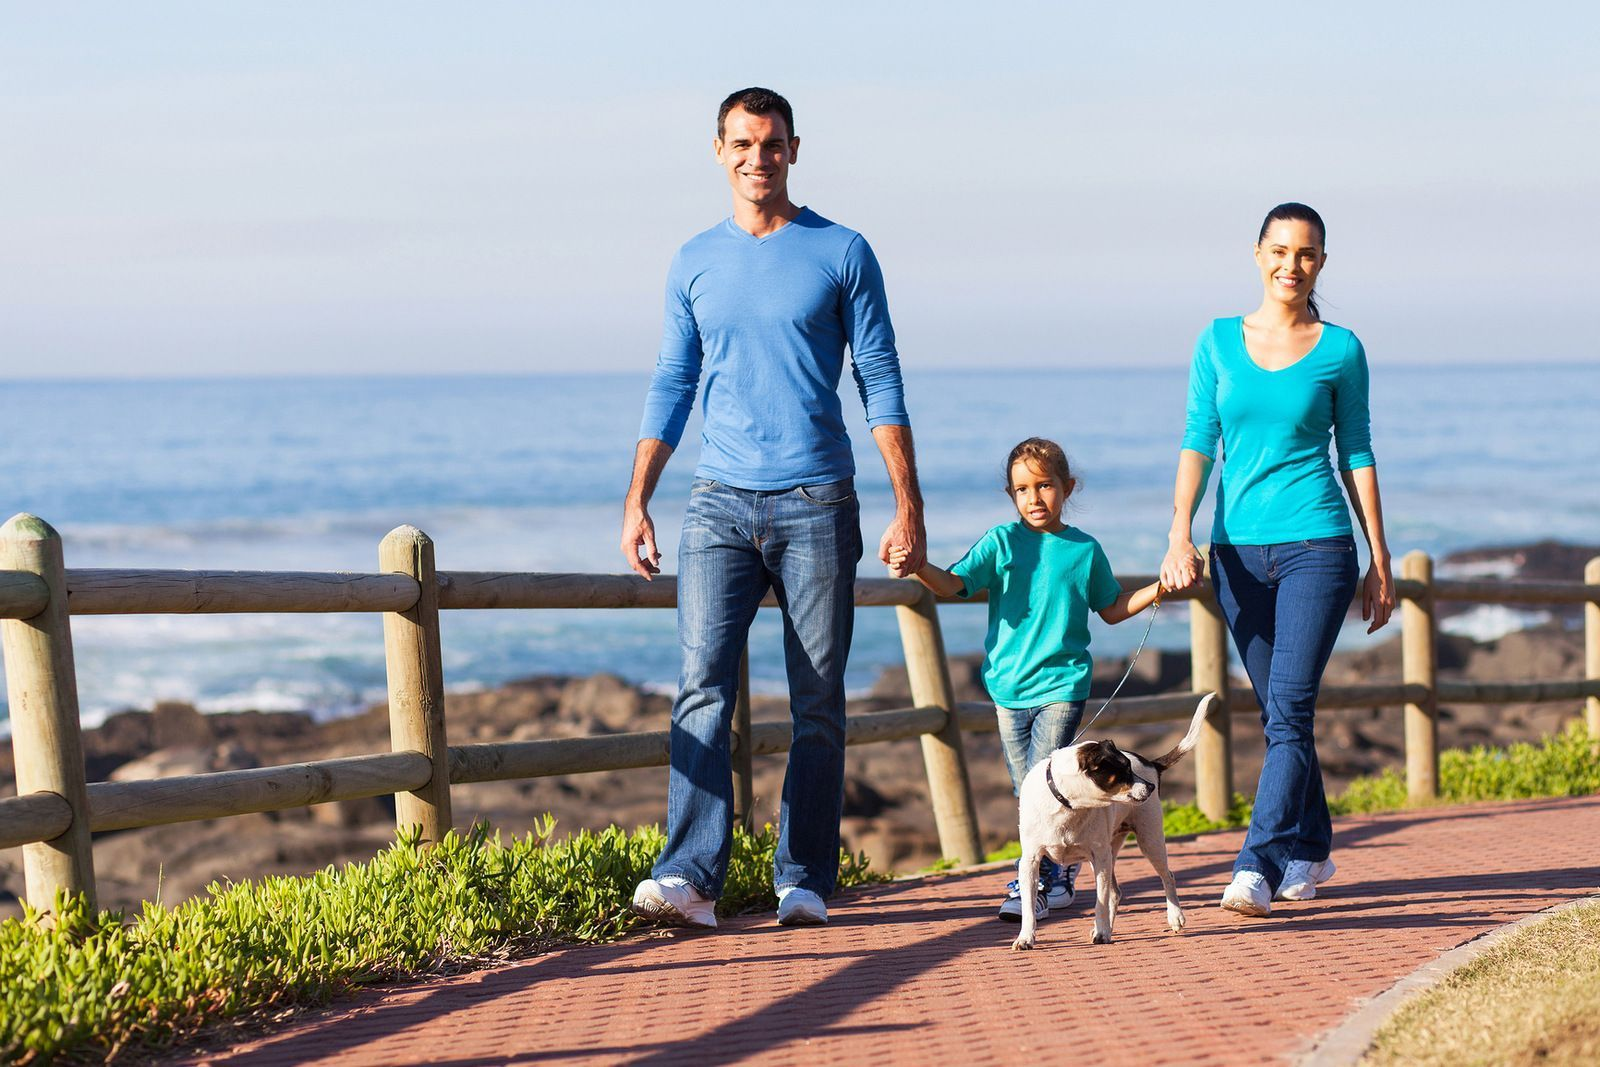 How to Walk With Kids for More Fun and Less Whining